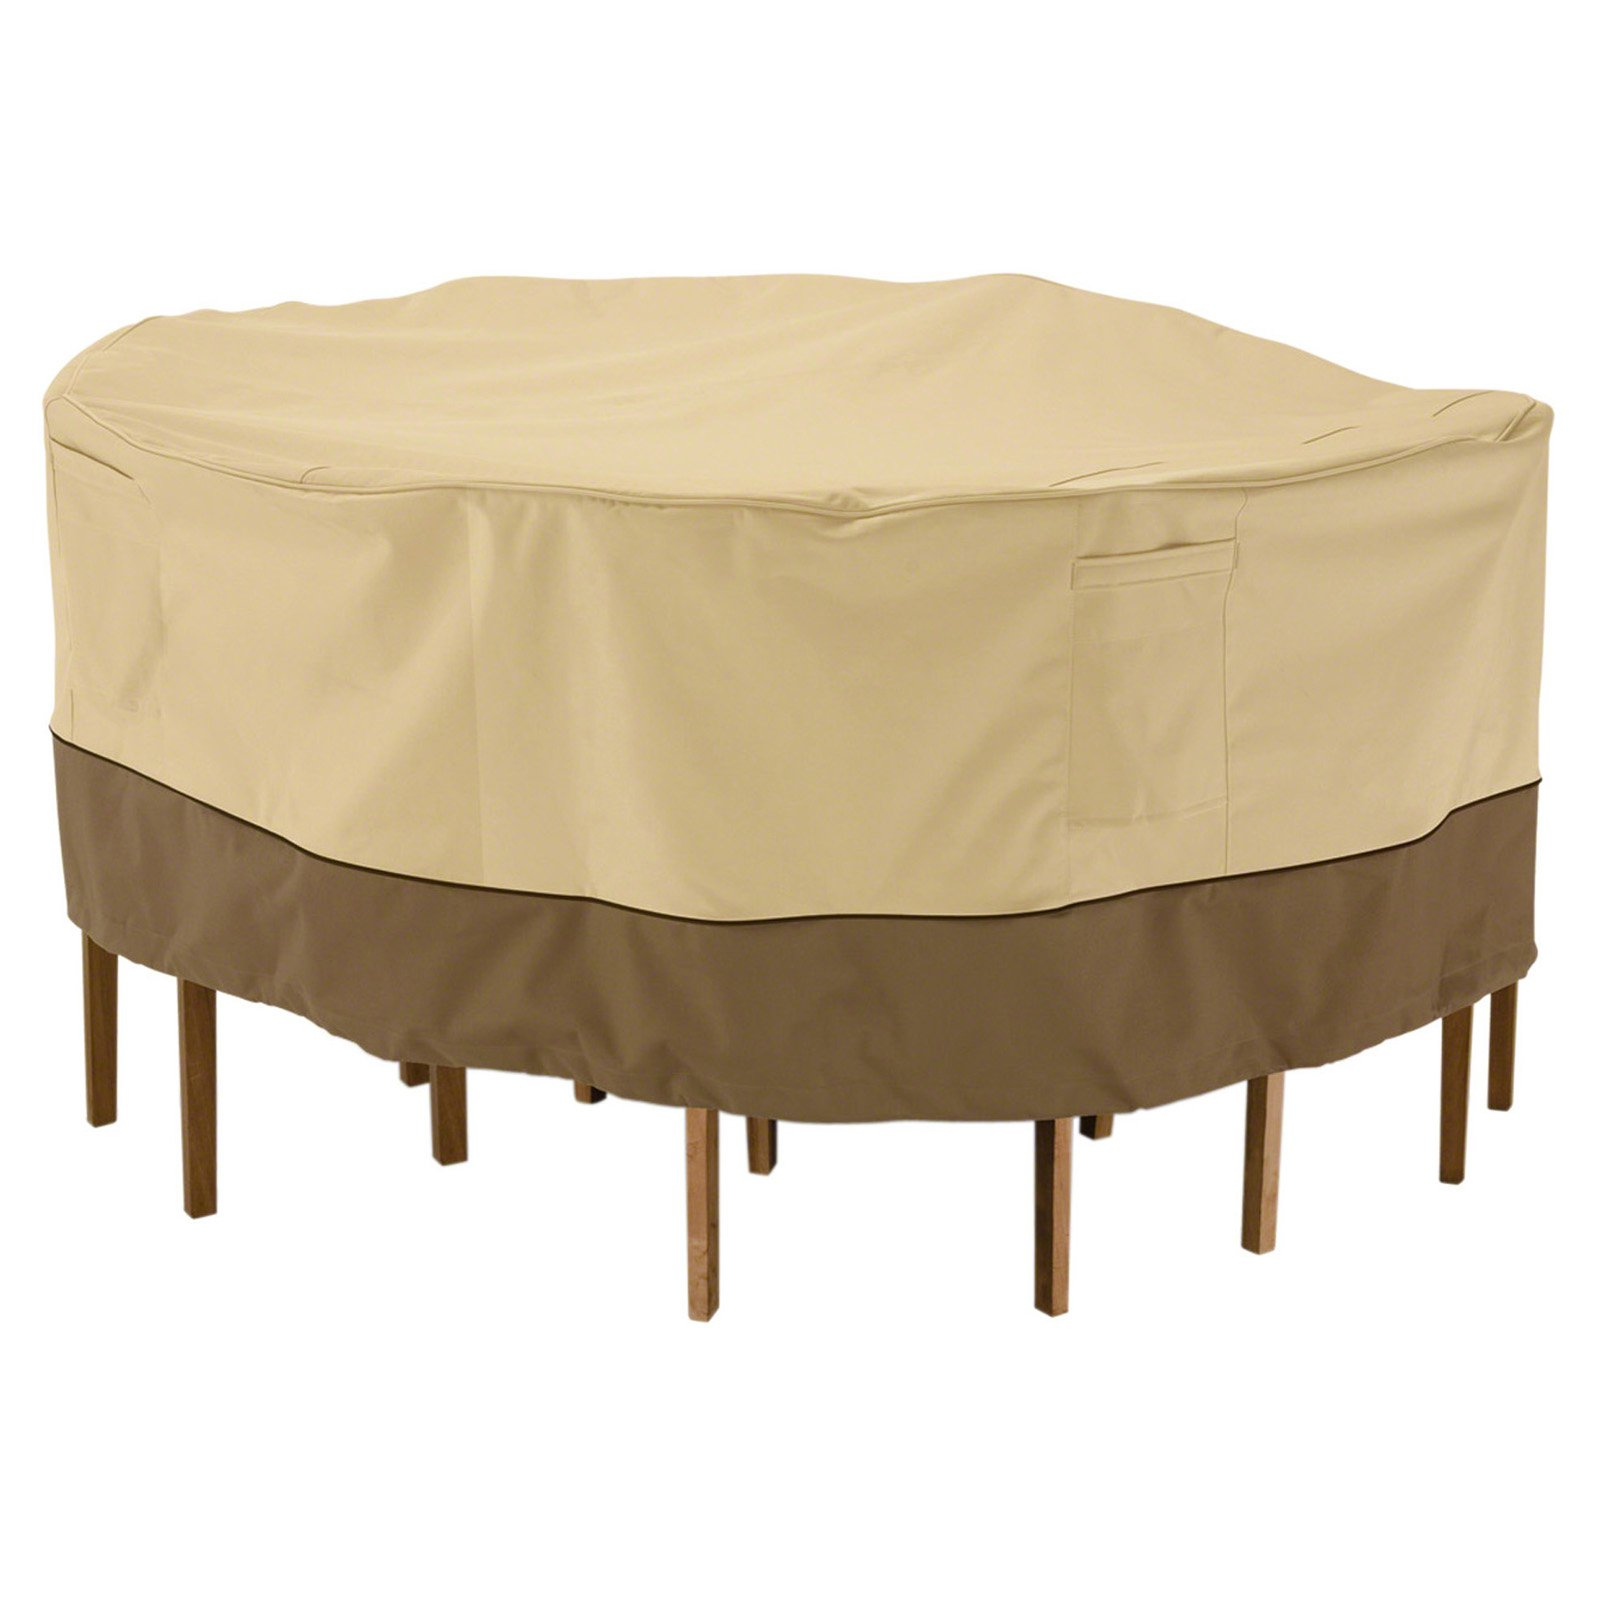 Extra Large Round Table Cloth.Extra Large Round Outdoor Table Covers Outdoor Ideas